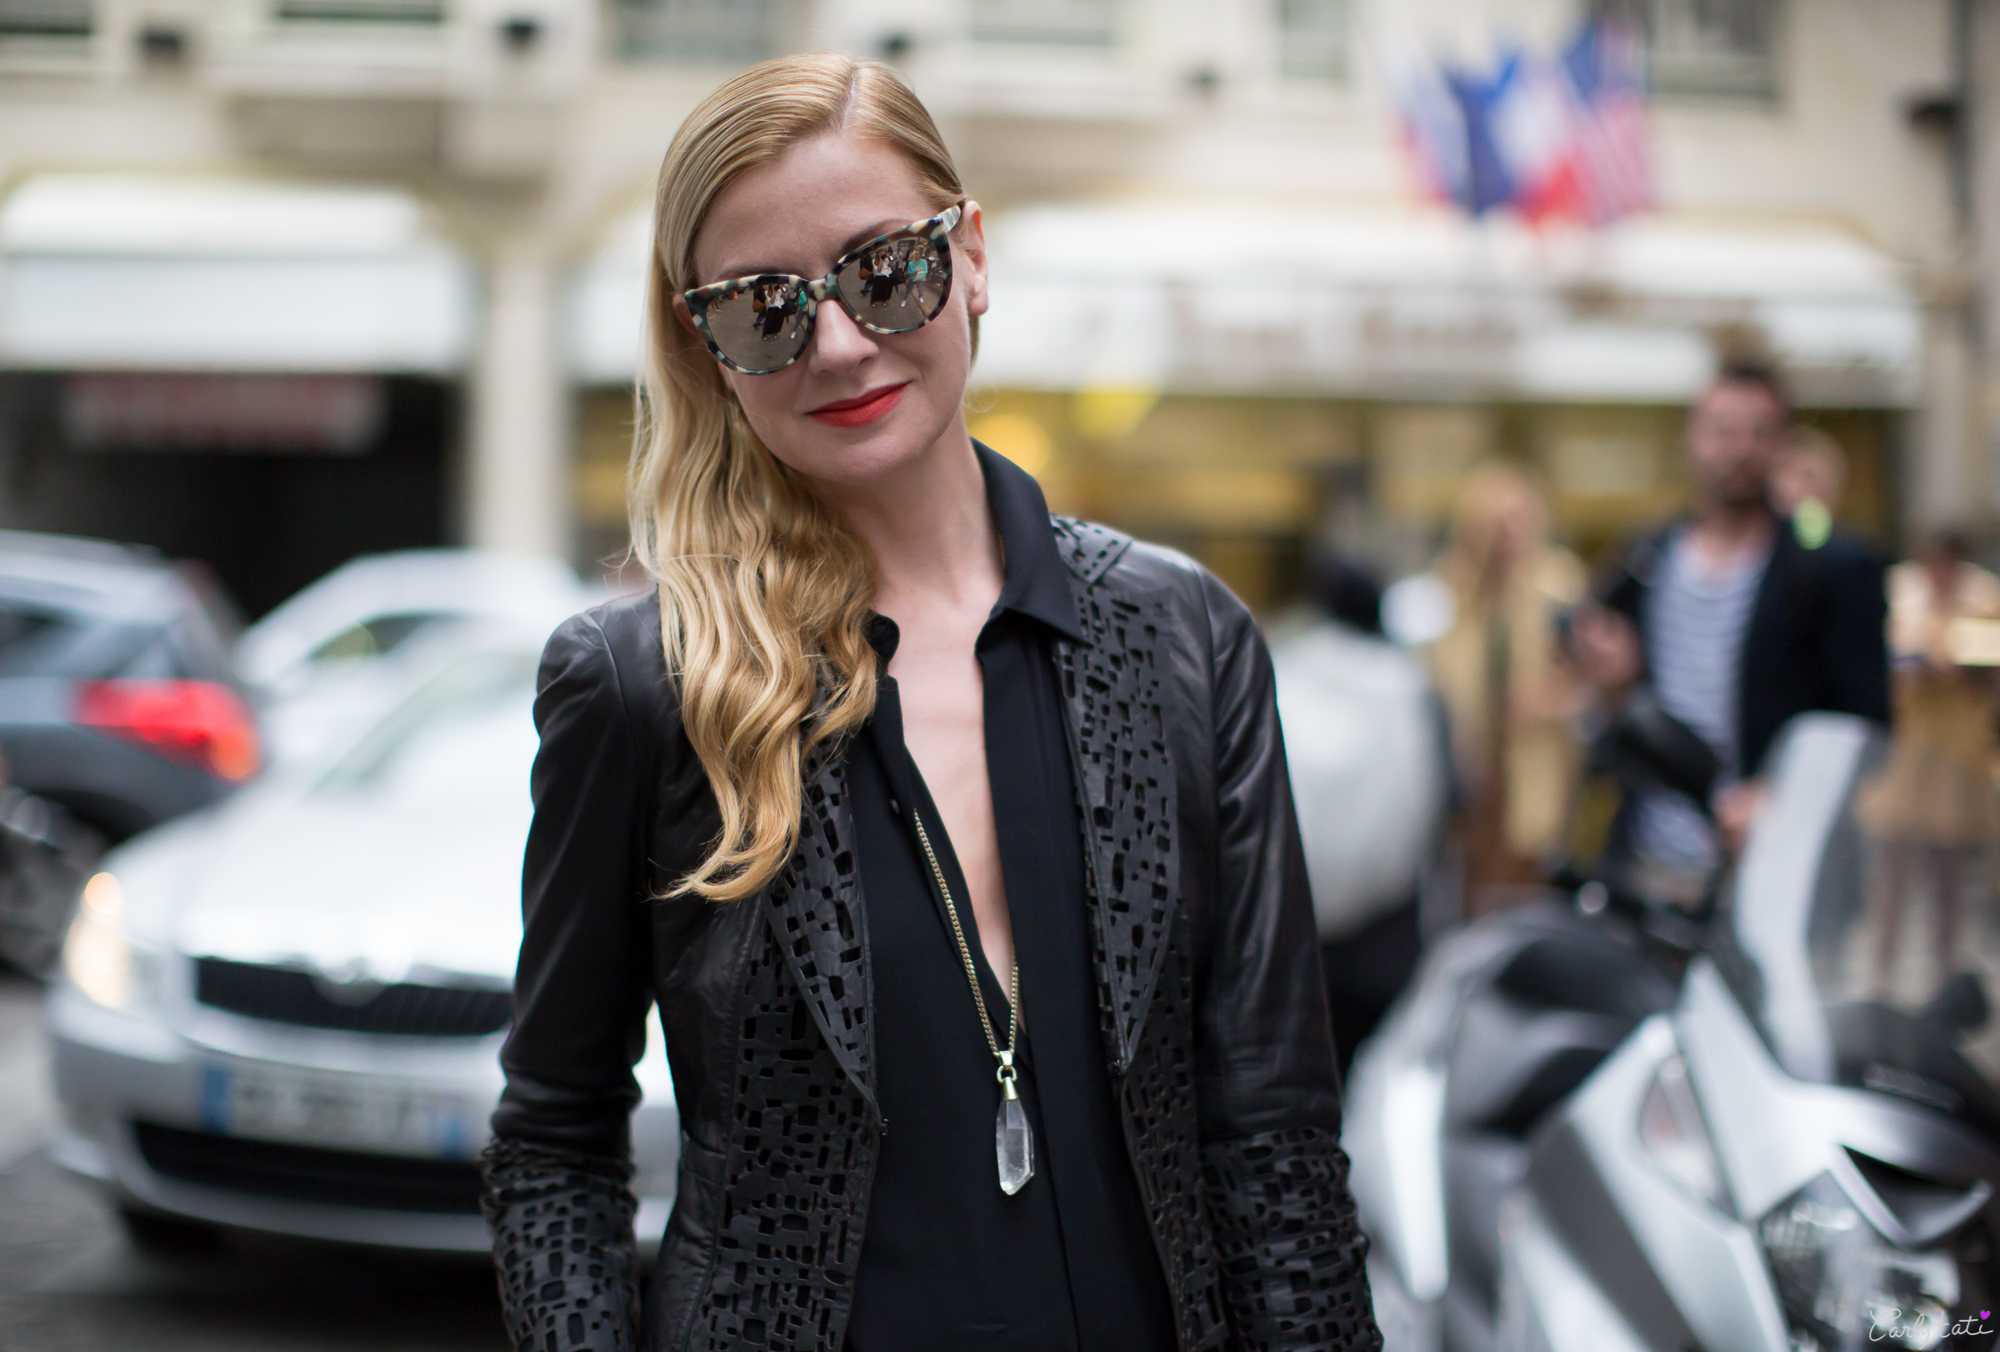 lets talk street style at fashion week � the fashion tag